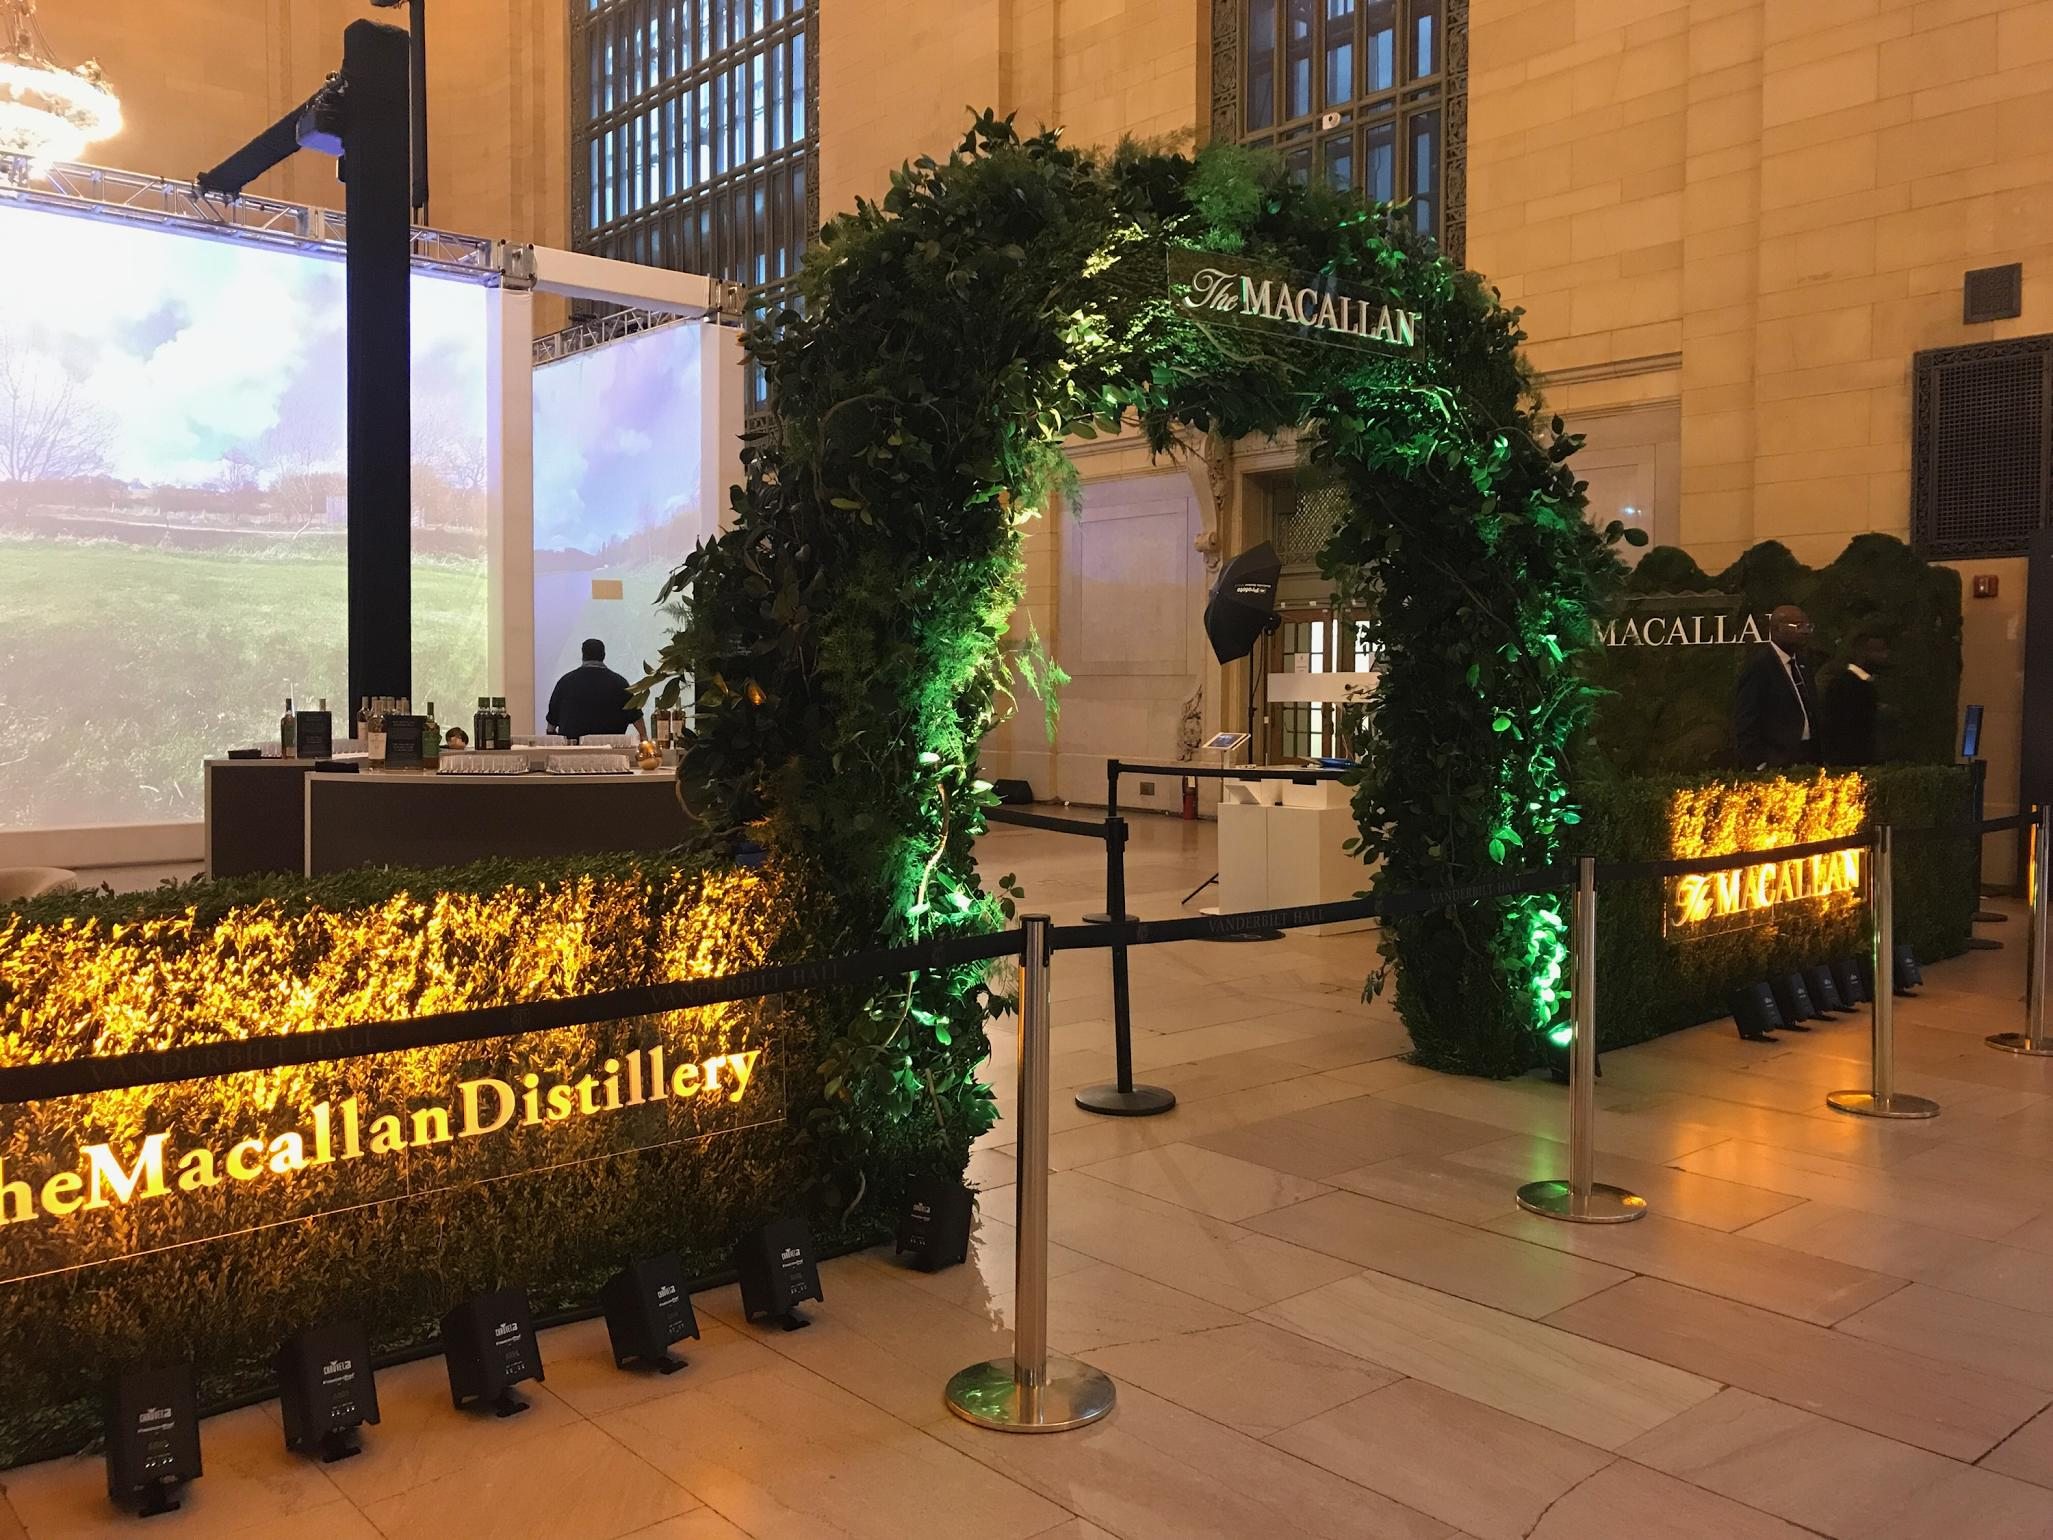 Macallan at Grand Central Station by Brenton Wolf 2018